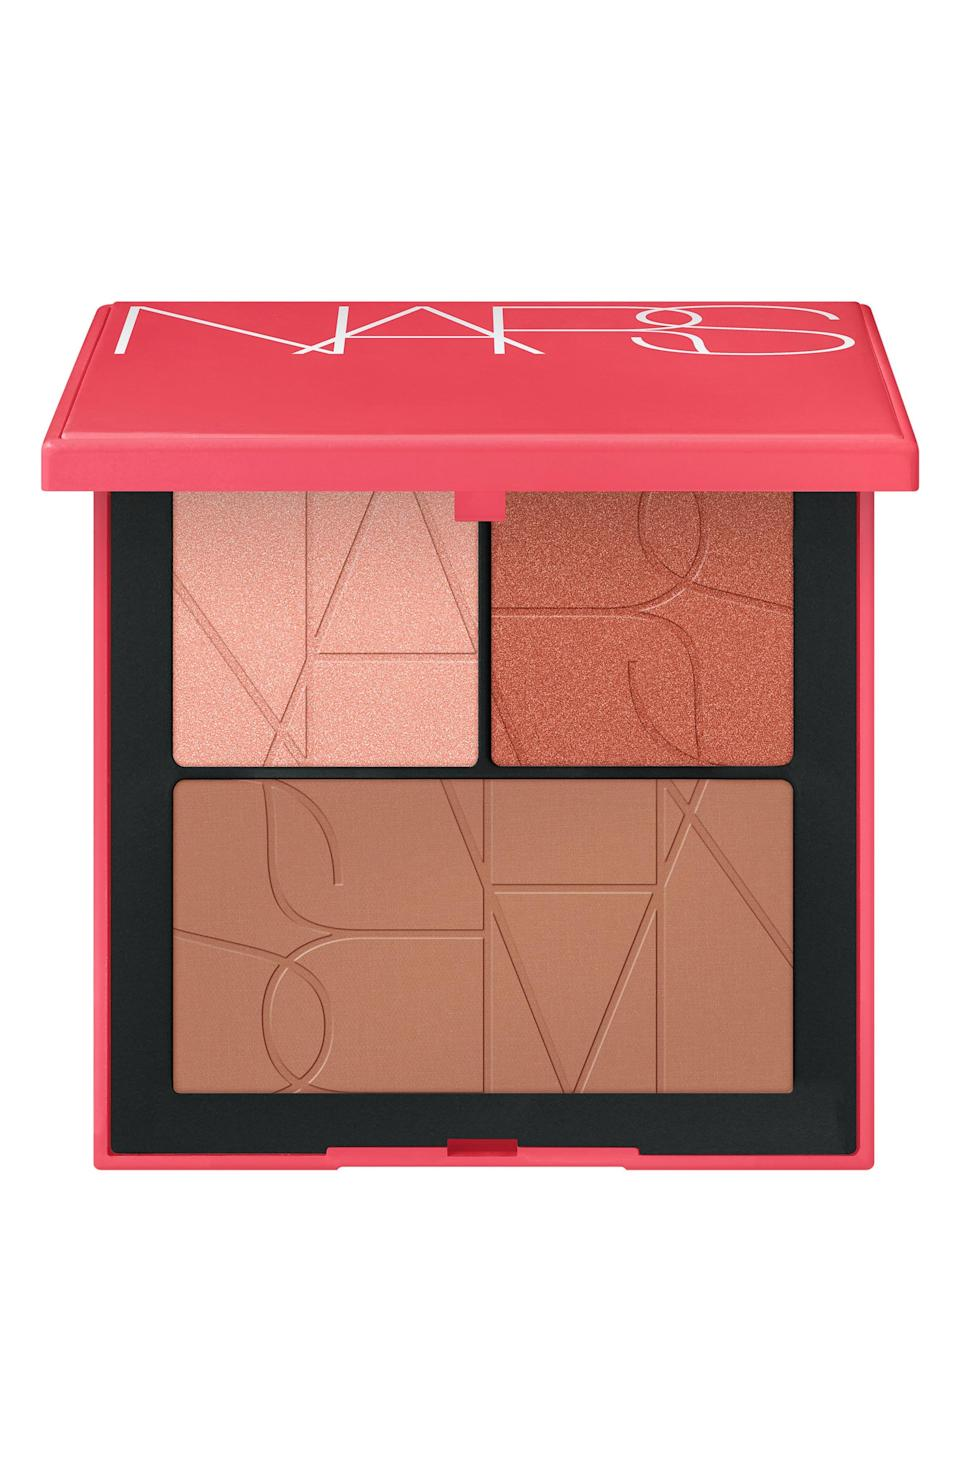 """<p><strong>NARS</strong></p><p>nordstrom.com</p><p><strong>$45.00</strong></p><p><a href=""""https://go.redirectingat.com?id=74968X1596630&url=https%3A%2F%2Fwww.nordstrom.com%2Fs%2Fnars-pleasure-trip-cheek-palette-87-value%2F5913151&sref=https%3A%2F%2Fwww.elle.com%2Fbeauty%2Fg36944650%2Fnorstrom-anniversary-beauty-sale-2021%2F"""" rel=""""nofollow noopener"""" target=""""_blank"""" data-ylk=""""slk:Shop Now"""" class=""""link rapid-noclick-resp"""">Shop Now</a></p><p>For a post-smooch glow, this palette has a bronzing powder, highlight and blush that you can throw in your purse for on-the-go touch-ups.</p>"""